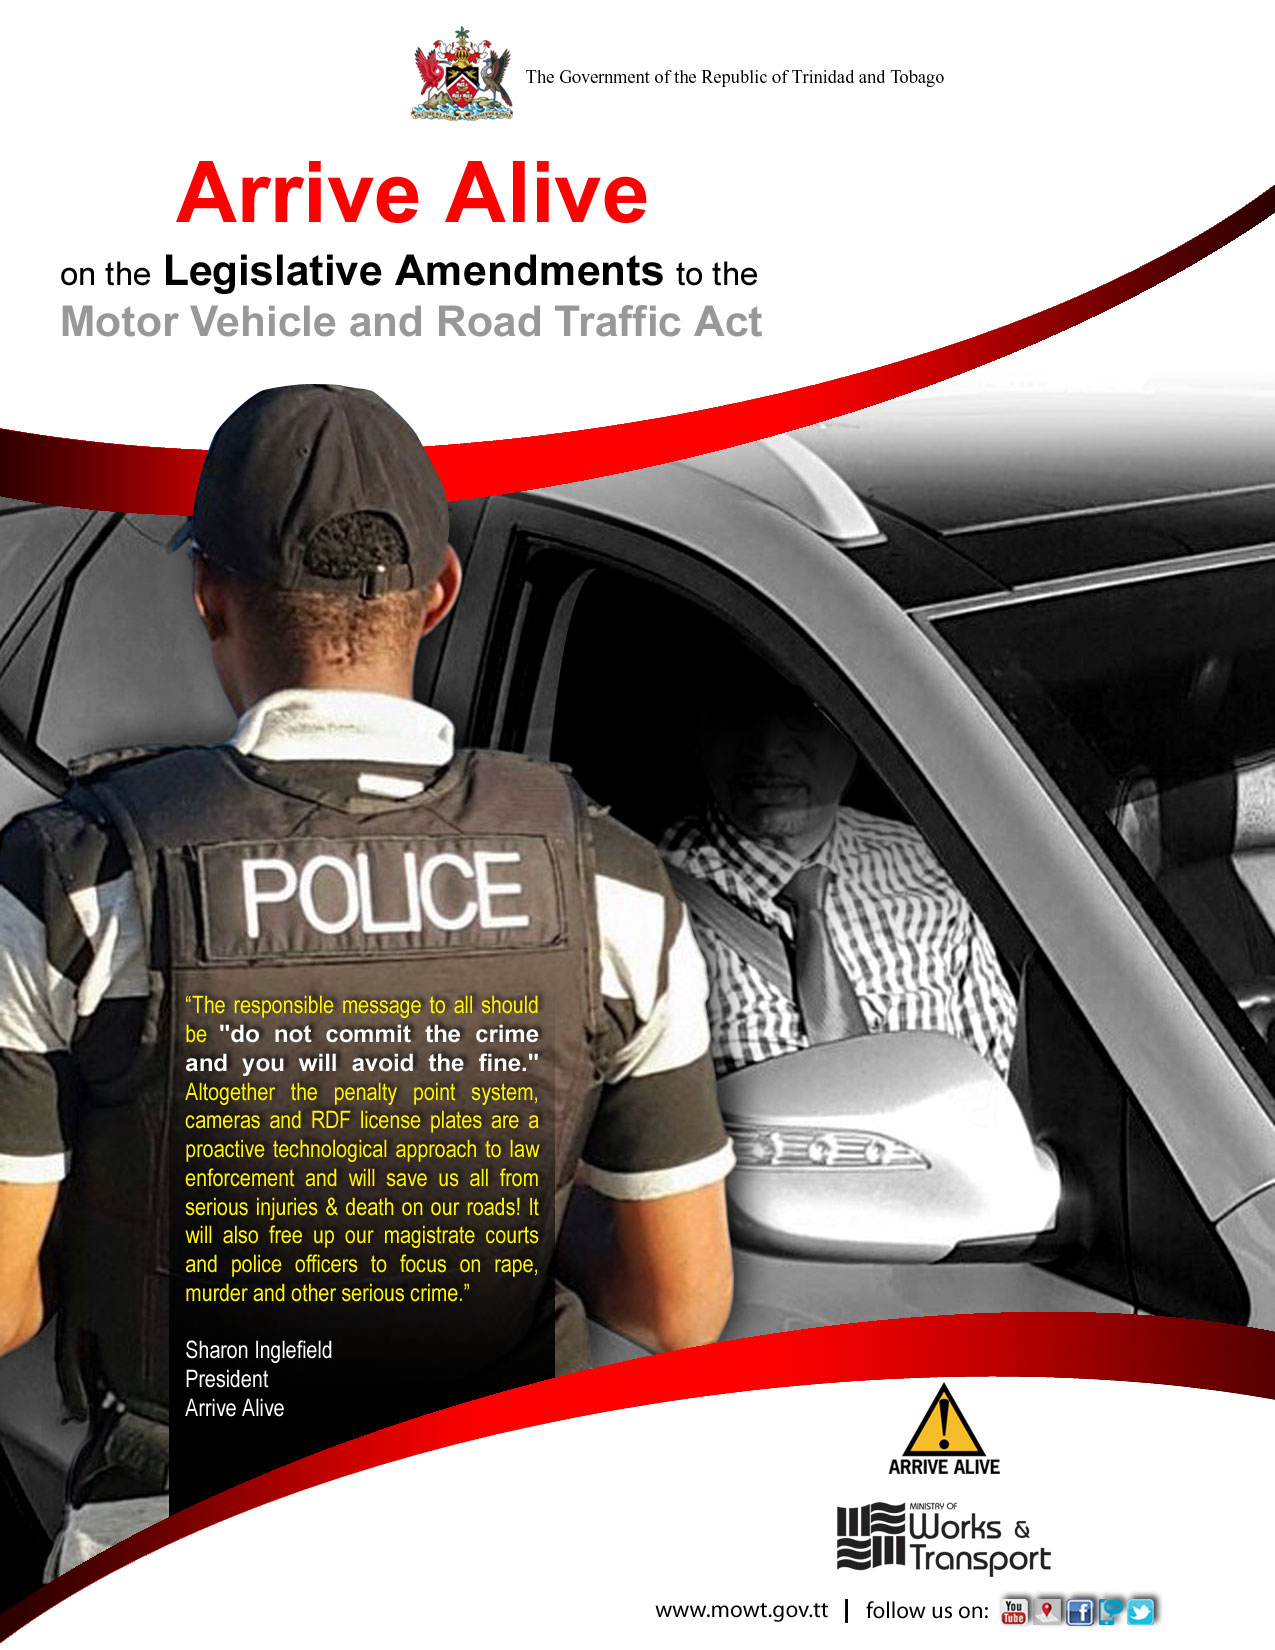 Motor Vehicles and Road Traffic Act – Arrive Alive